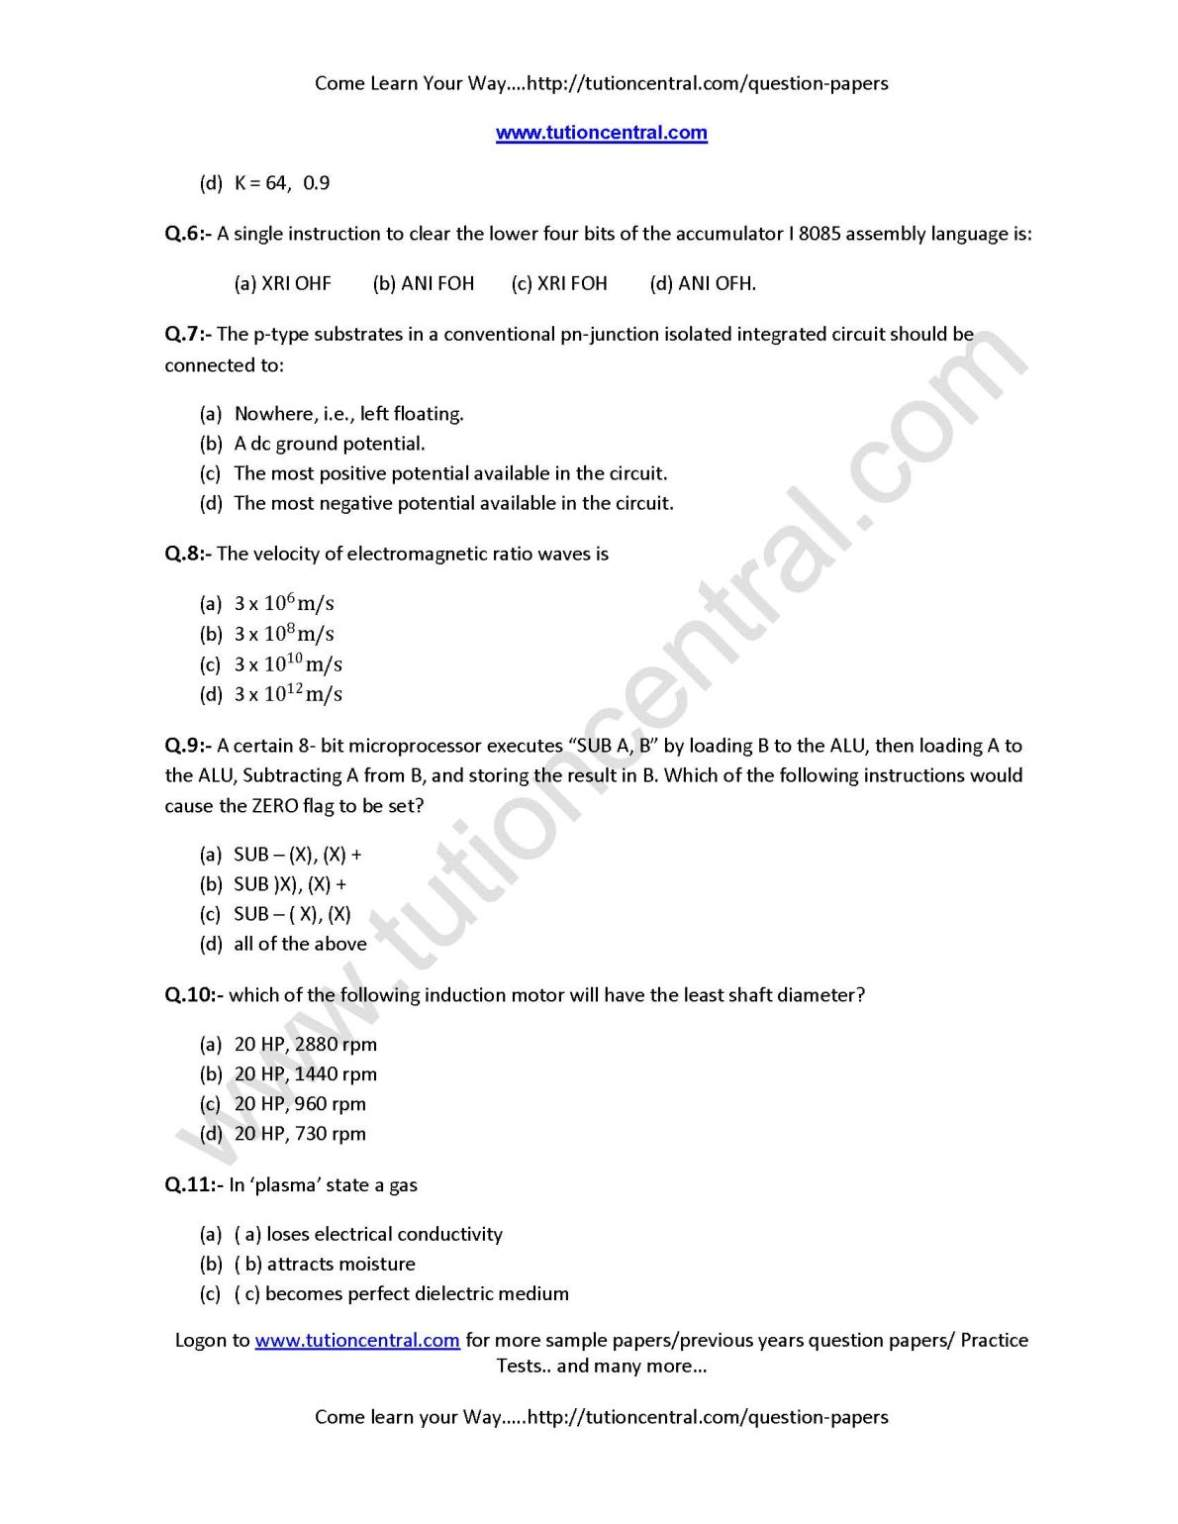 Drdo Previous Year Question Paper Pdf